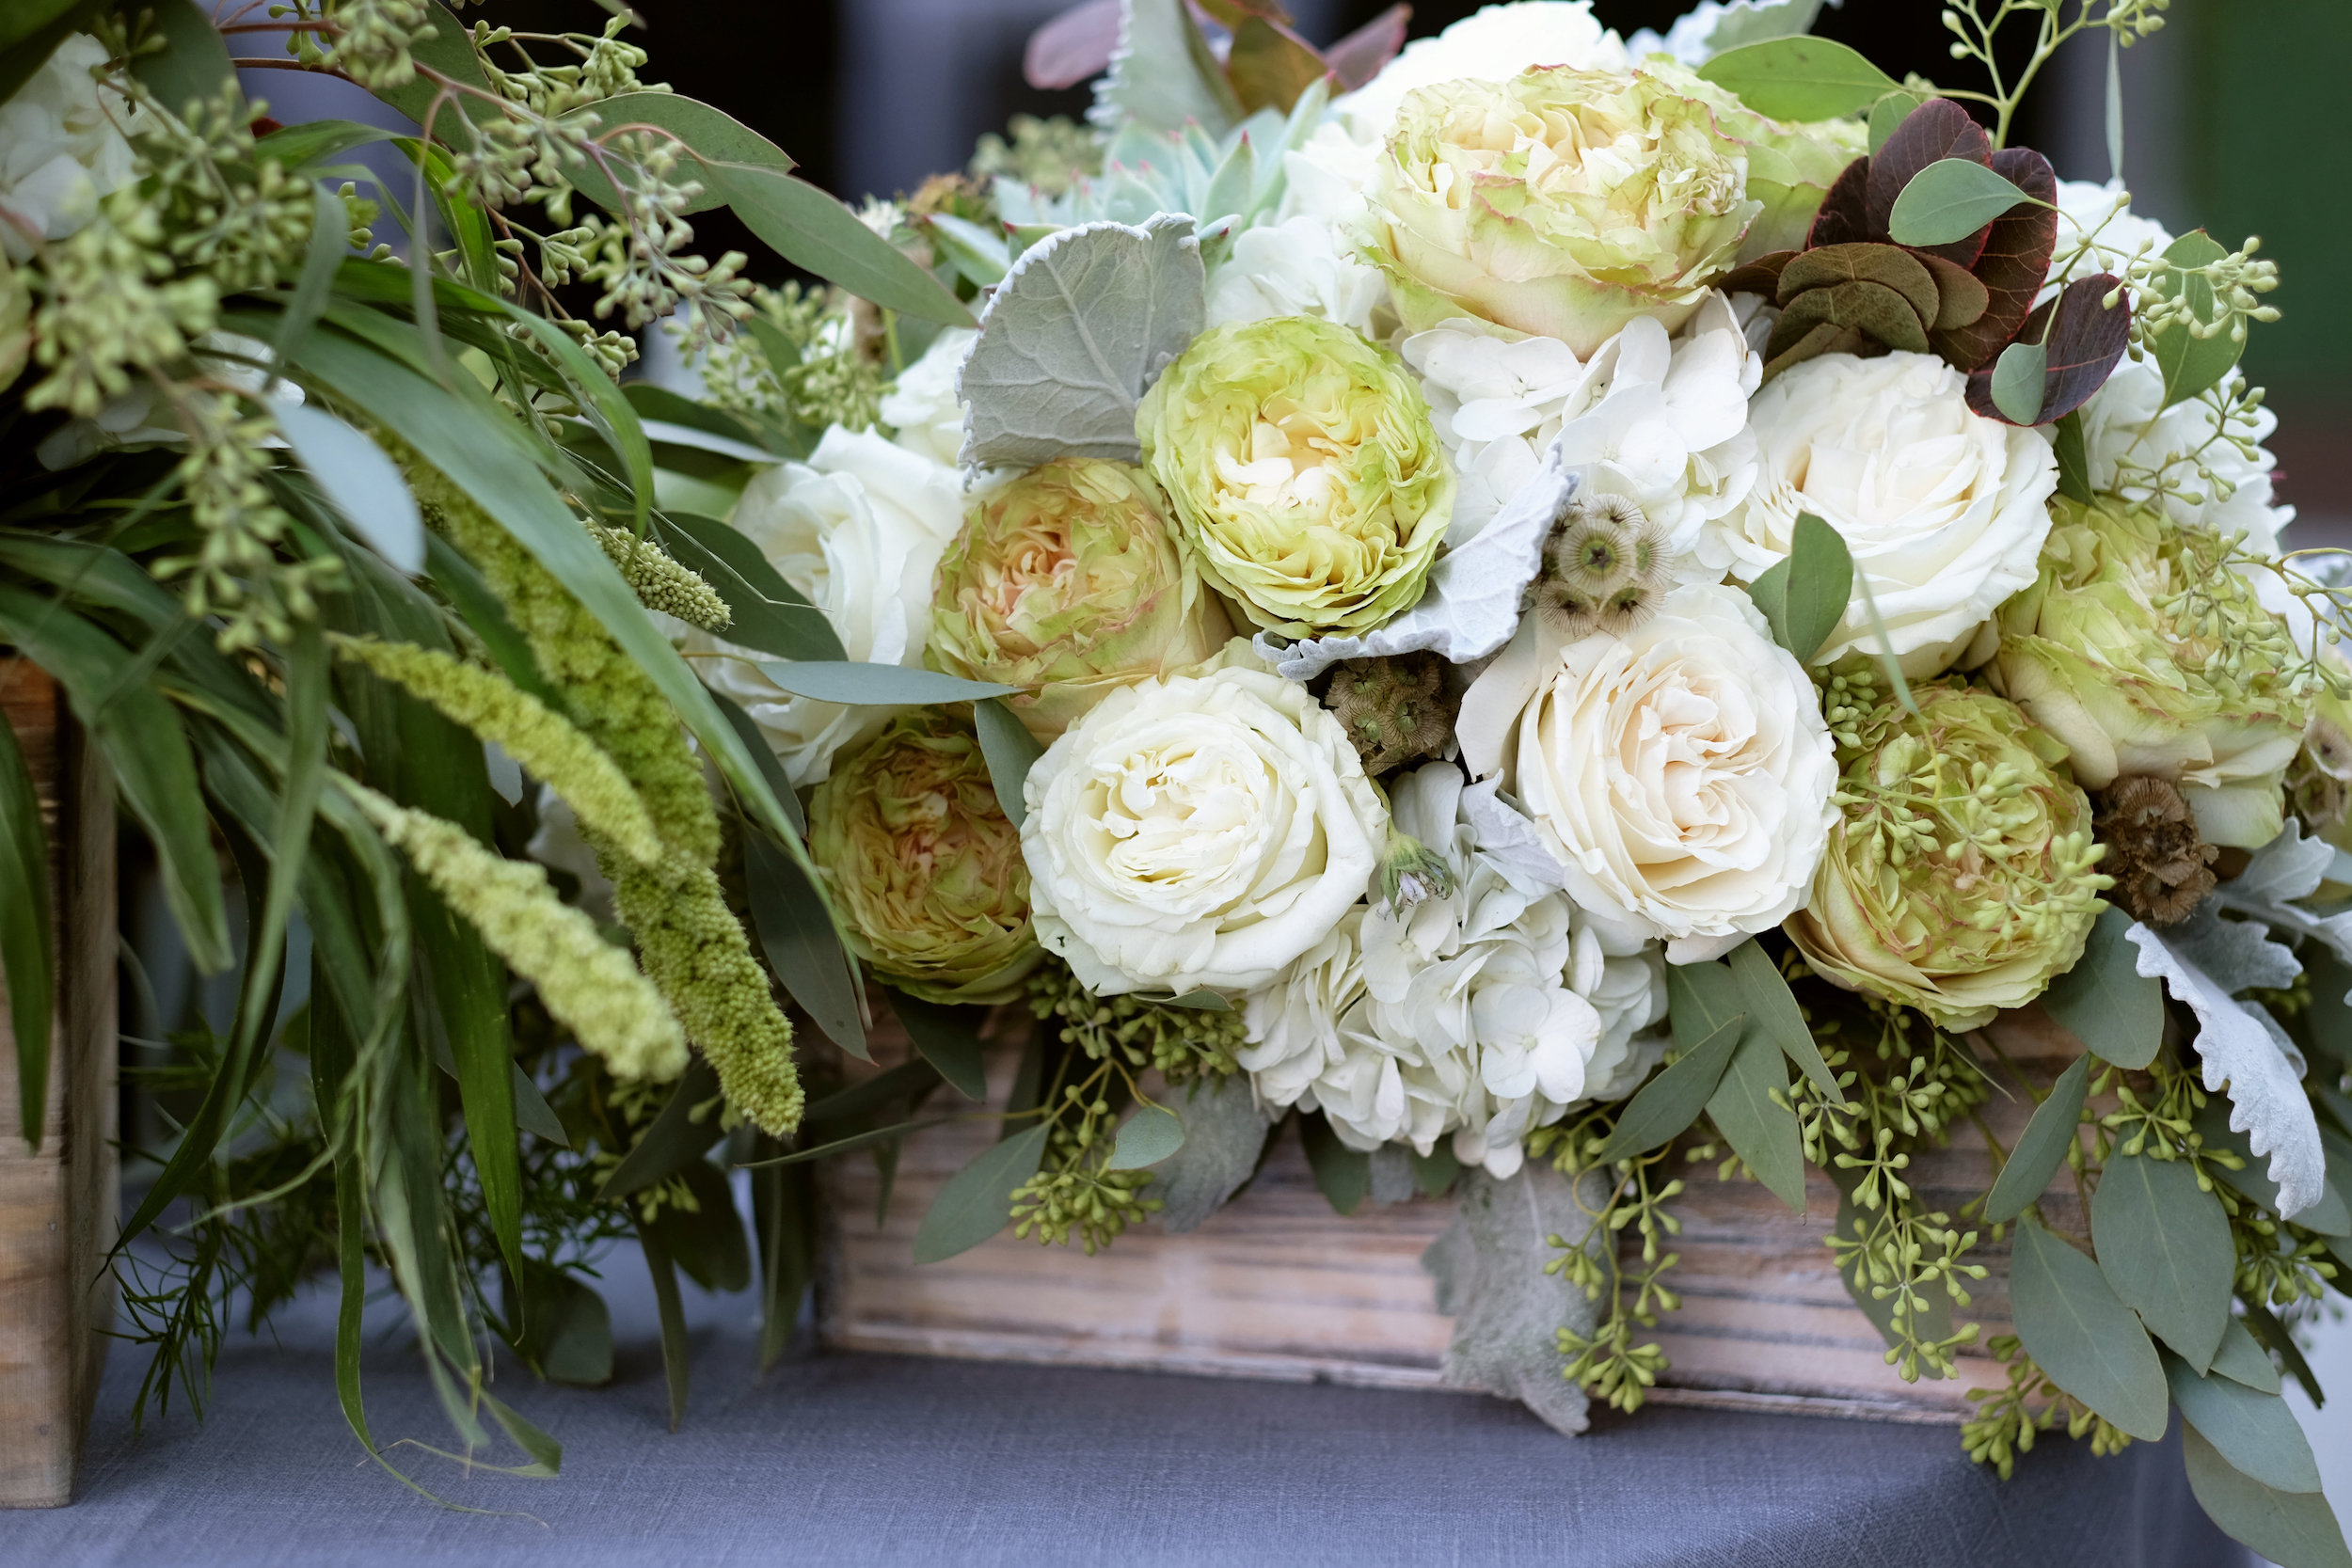 Green and White Garden Roses in Rustic Wooden Box